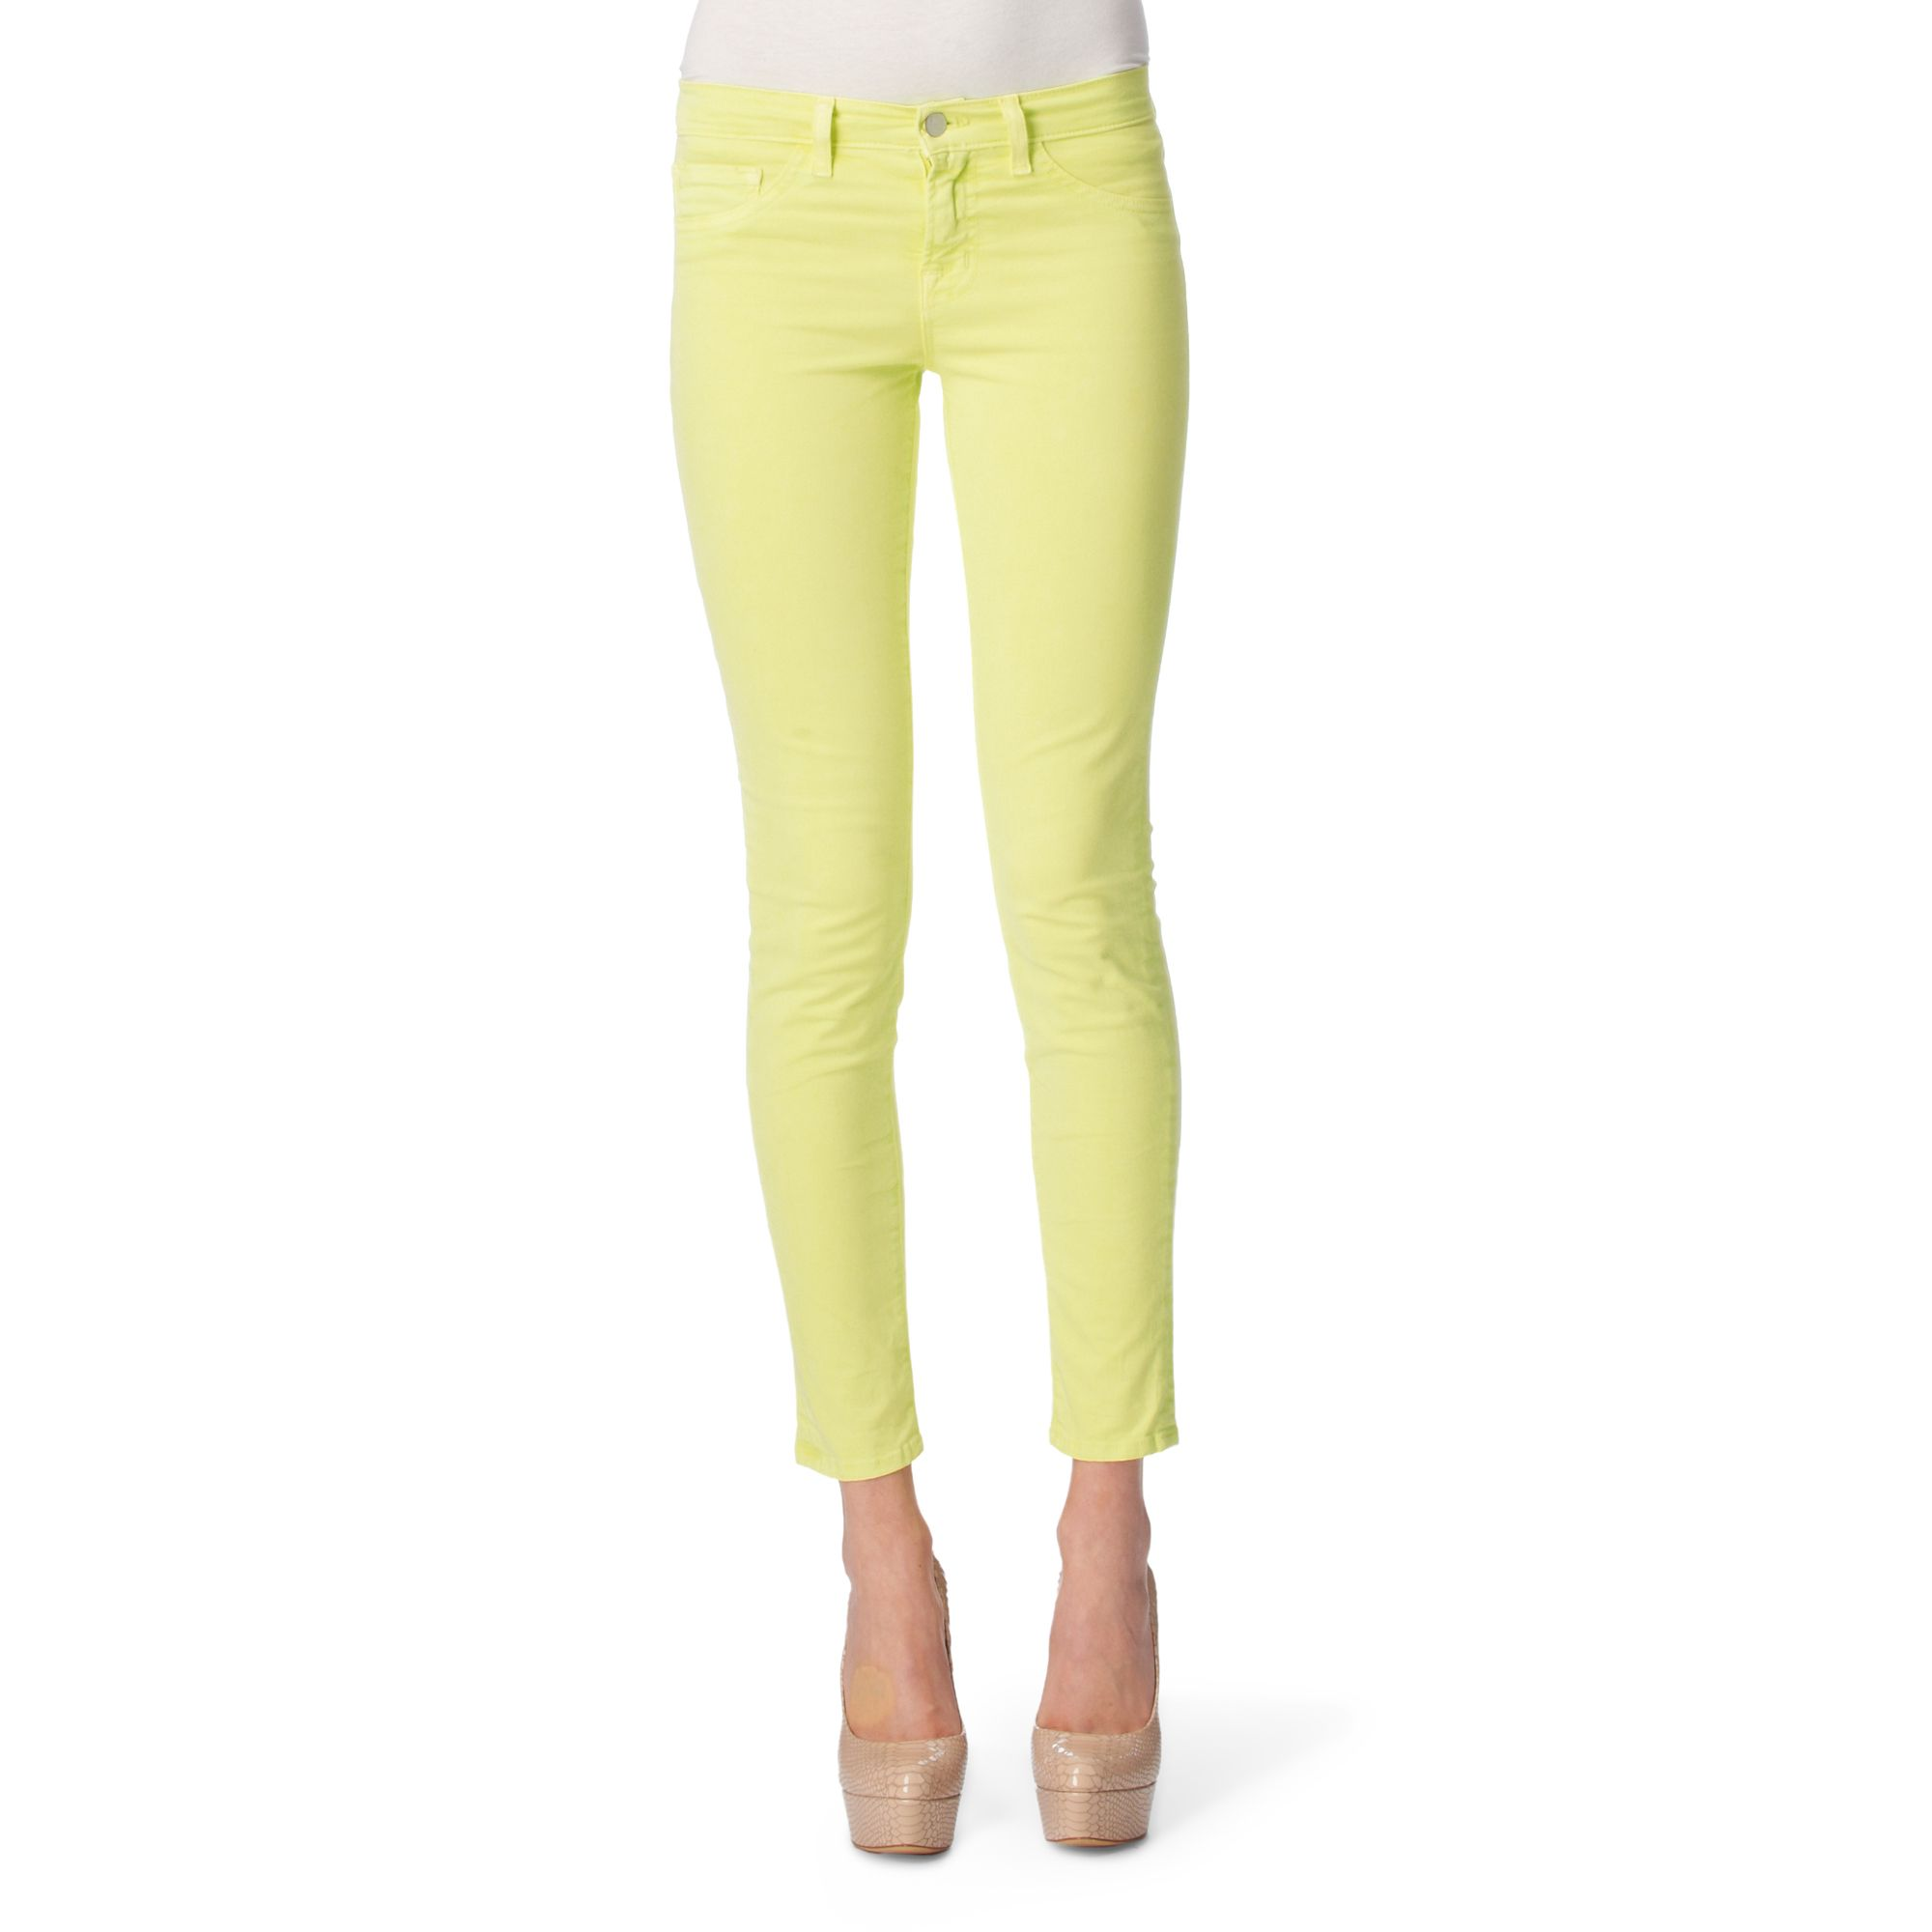 Mens neon yellow skinny jeans – Global fashion jeans collection